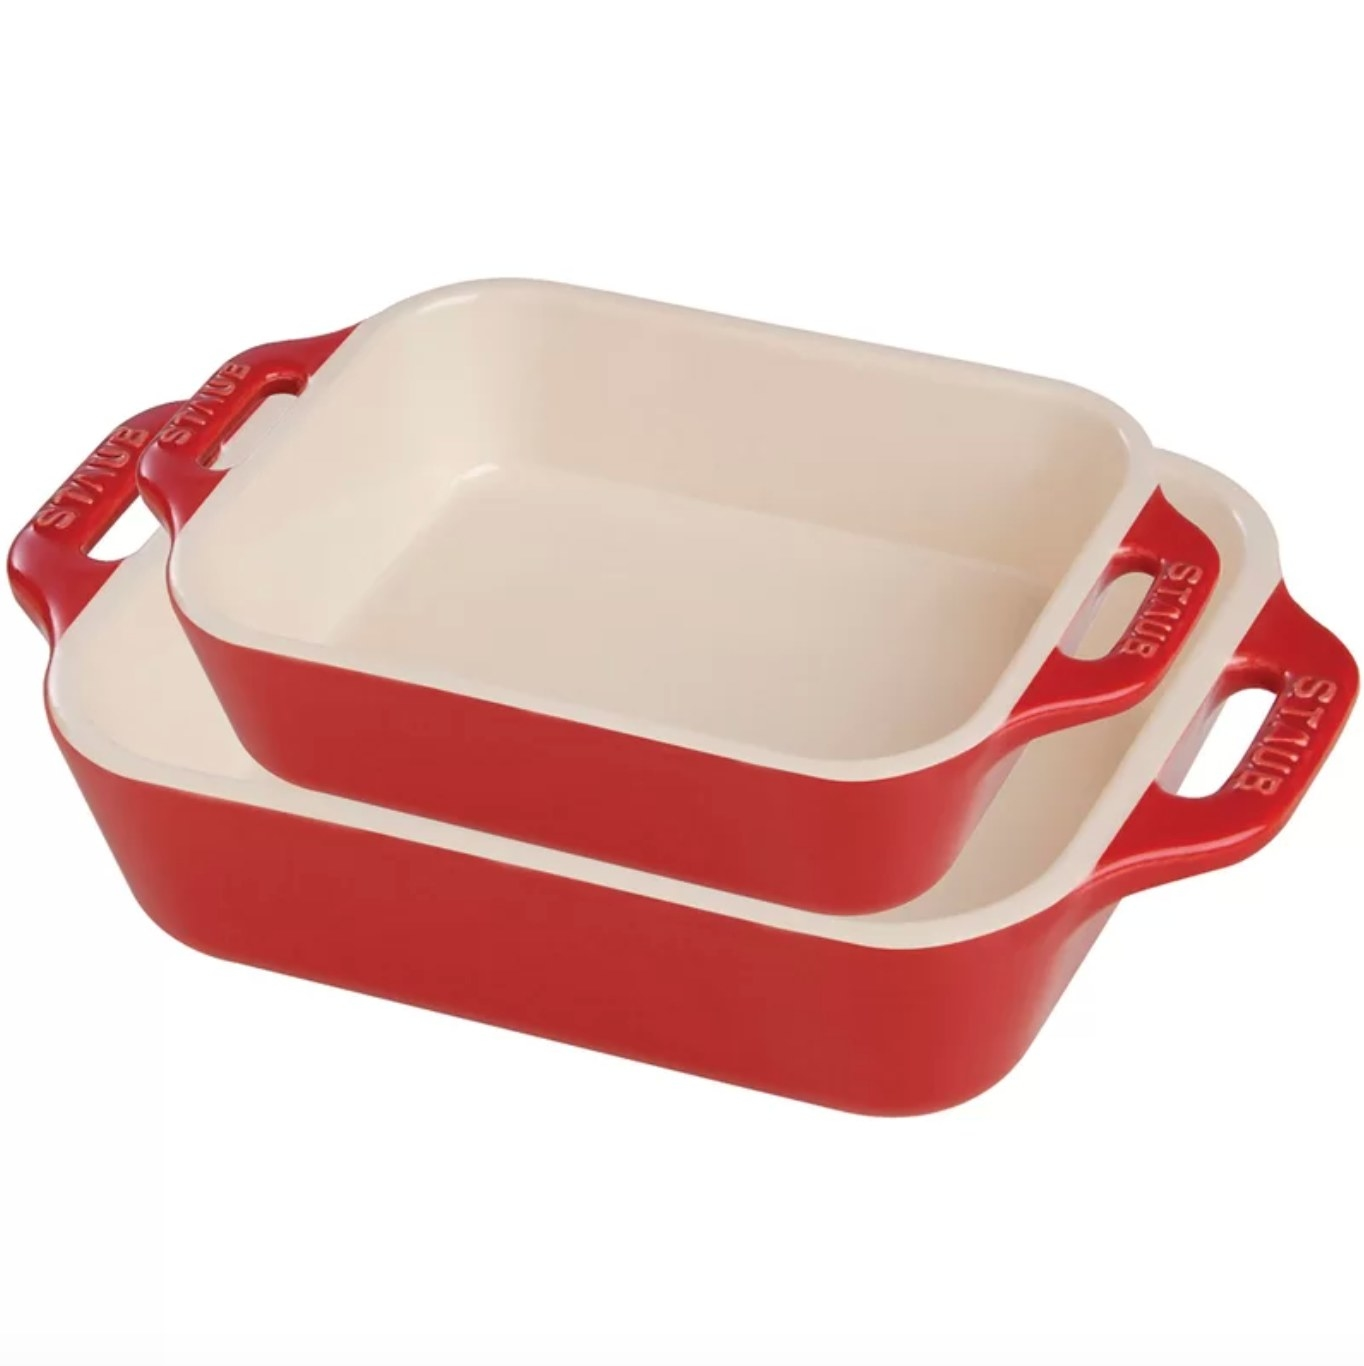 The pans in red